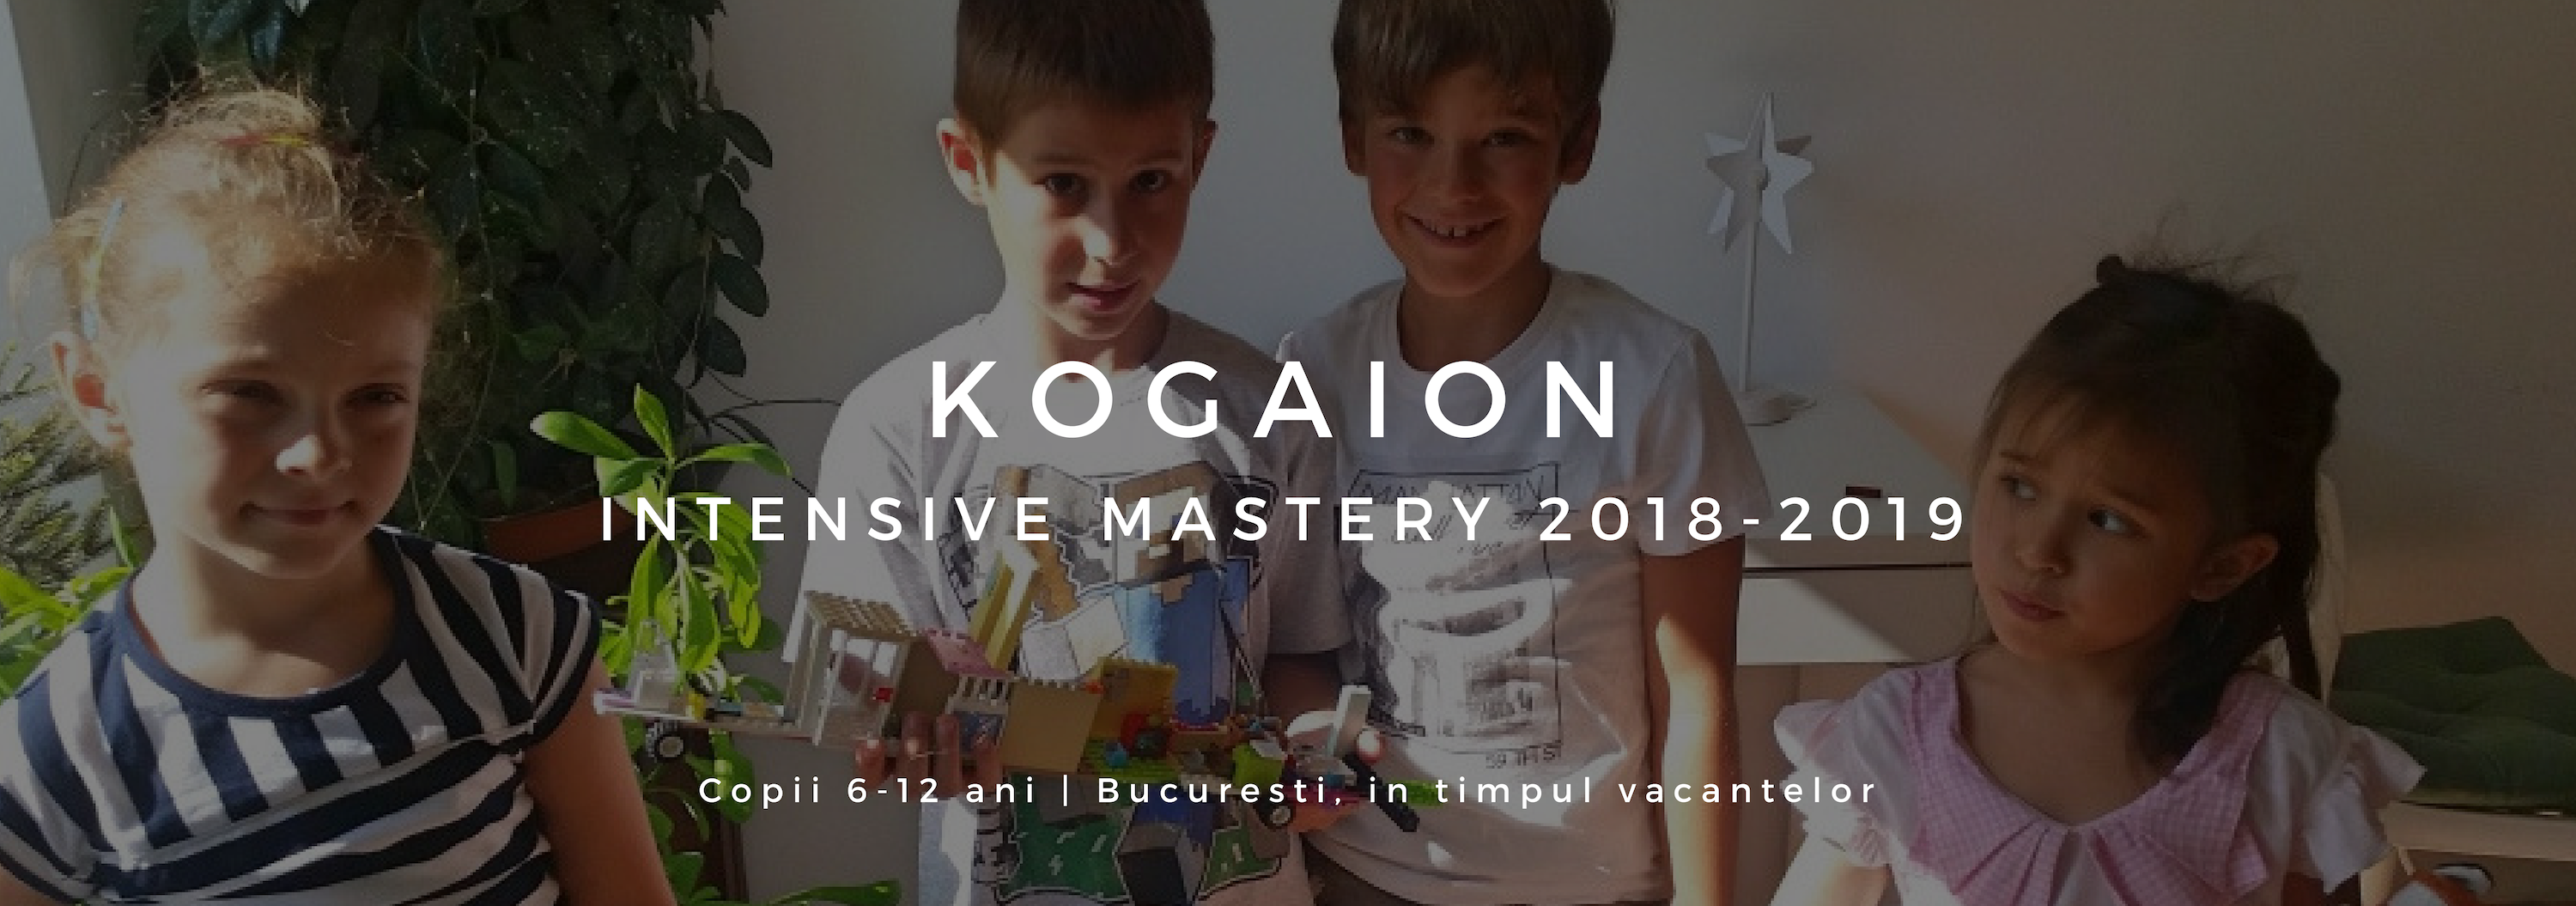 kogaion intensive mastery